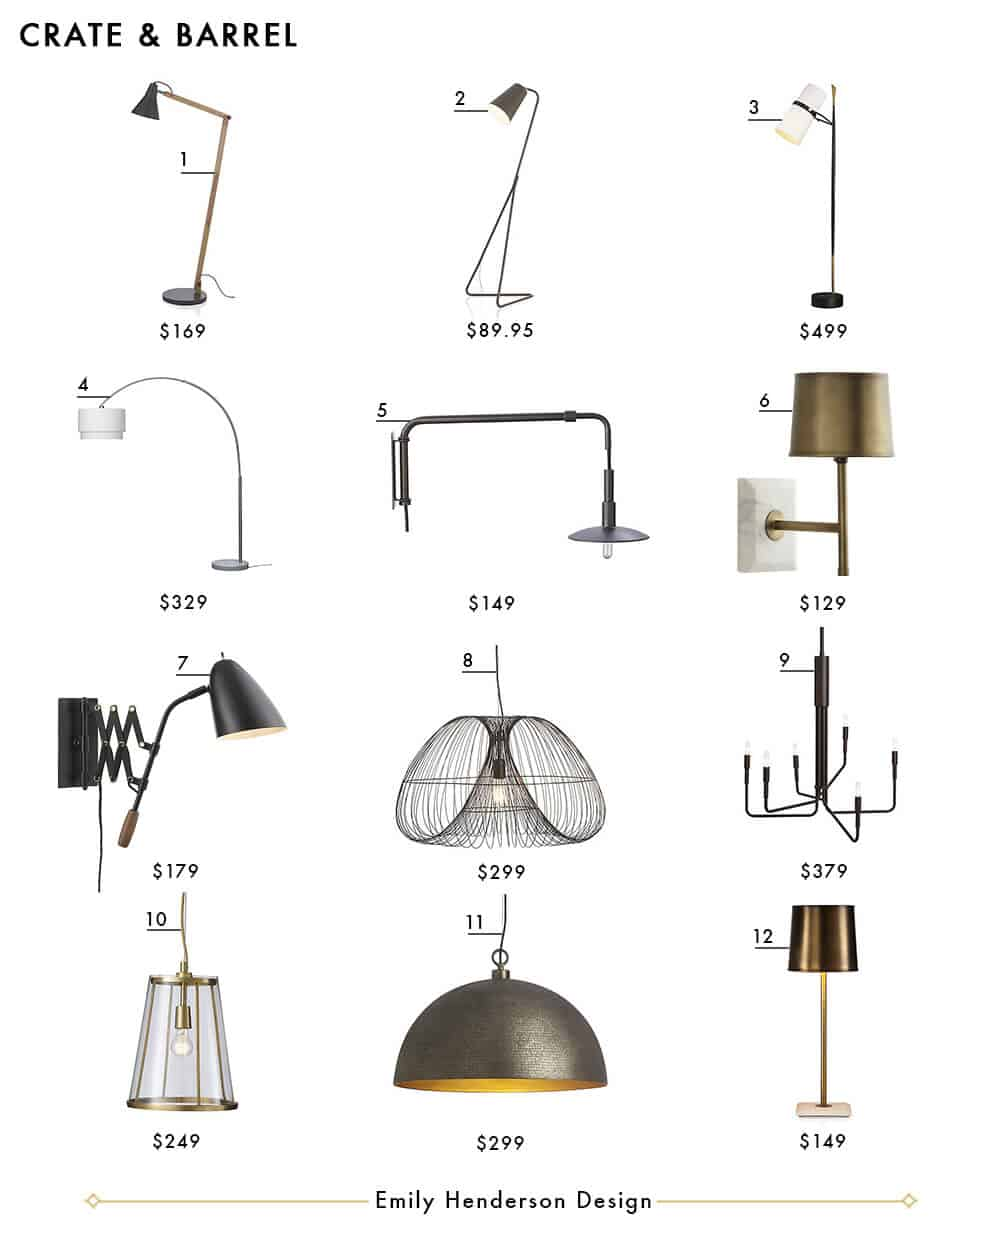 Crate and Barrel Emily Henderson Design Lighting Roundup